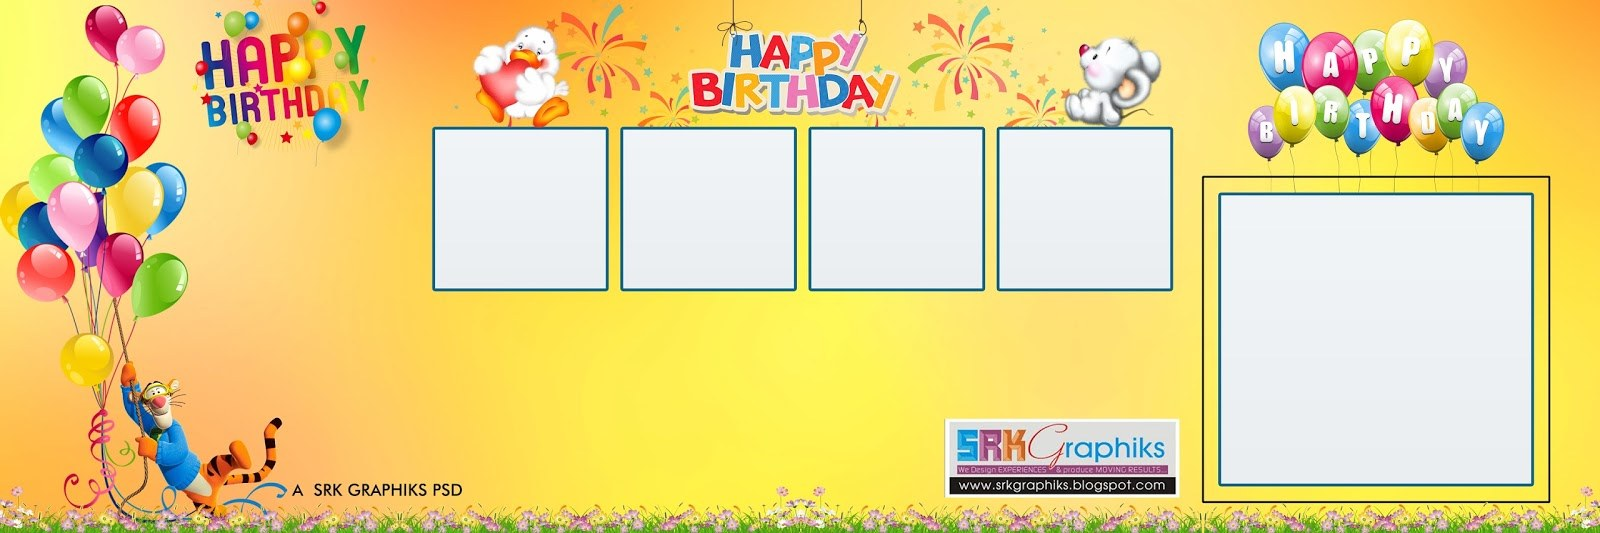 happy birthday psd background ; birthday-banner-background-design-psd-background-check-all-intended-for-birthday-banner-background-design-psd